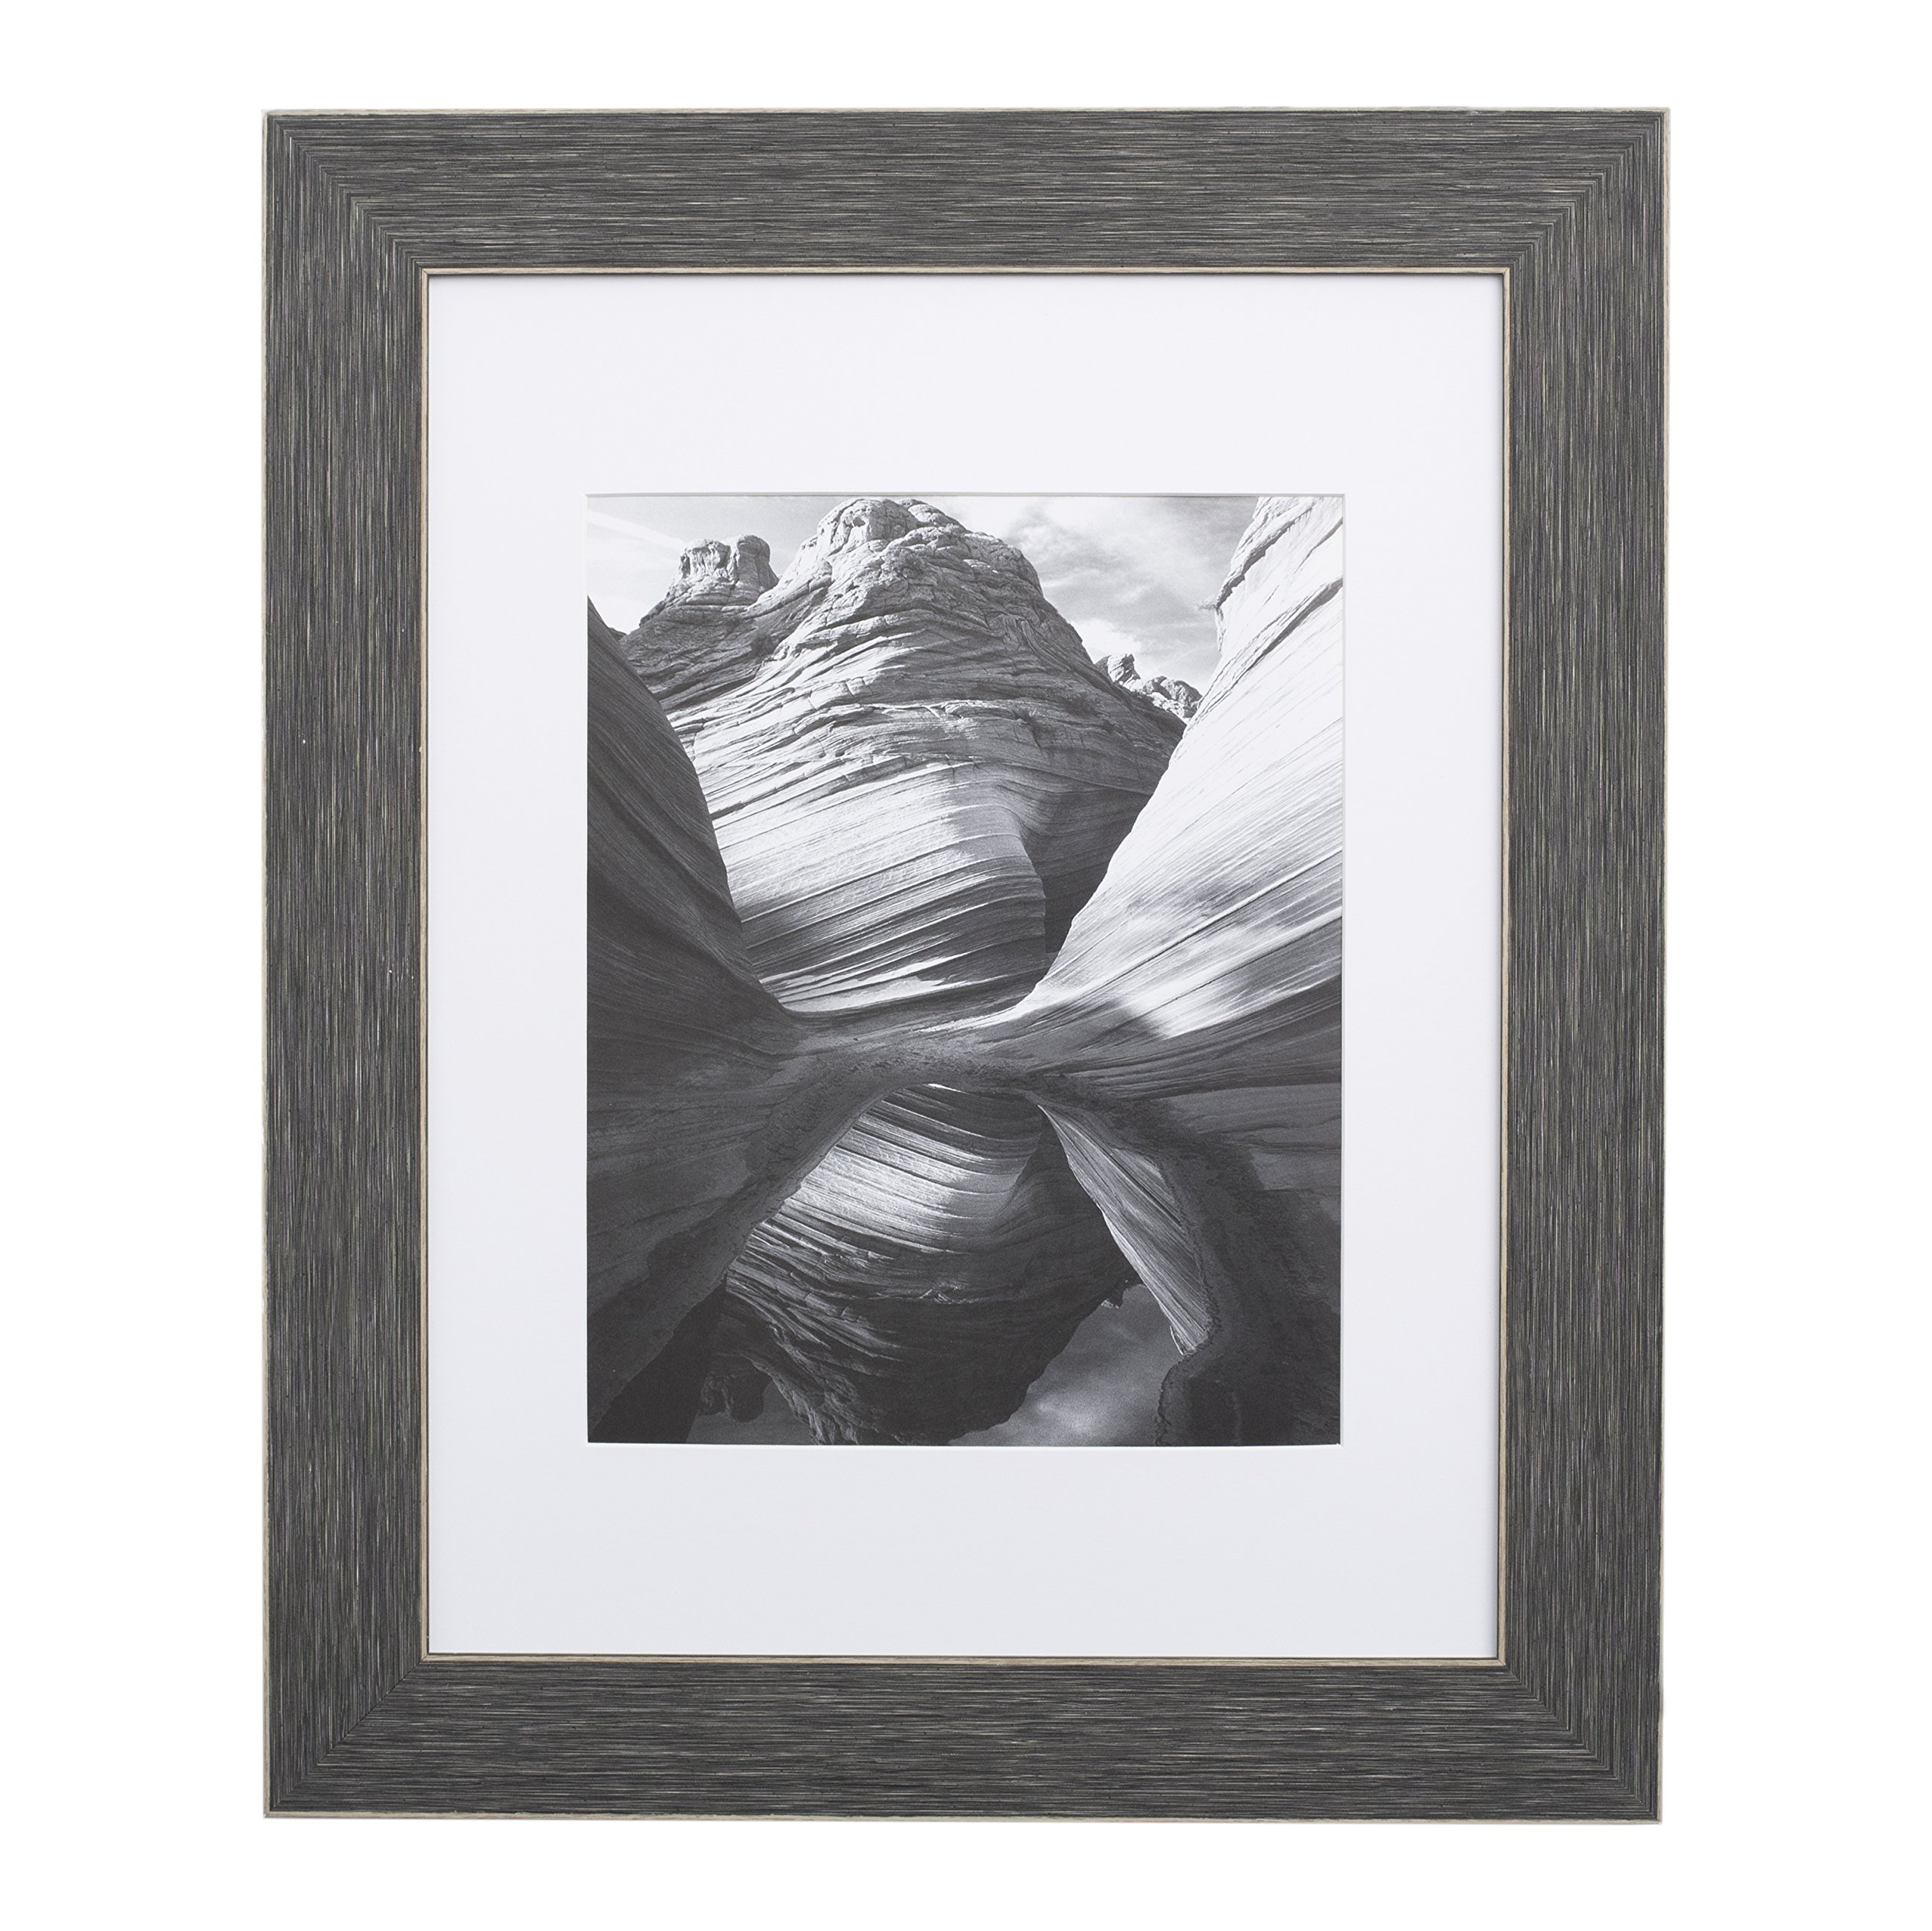 EcoHome 8x10 Picture Frame or Matted - for 5x7 Barnwood Grey